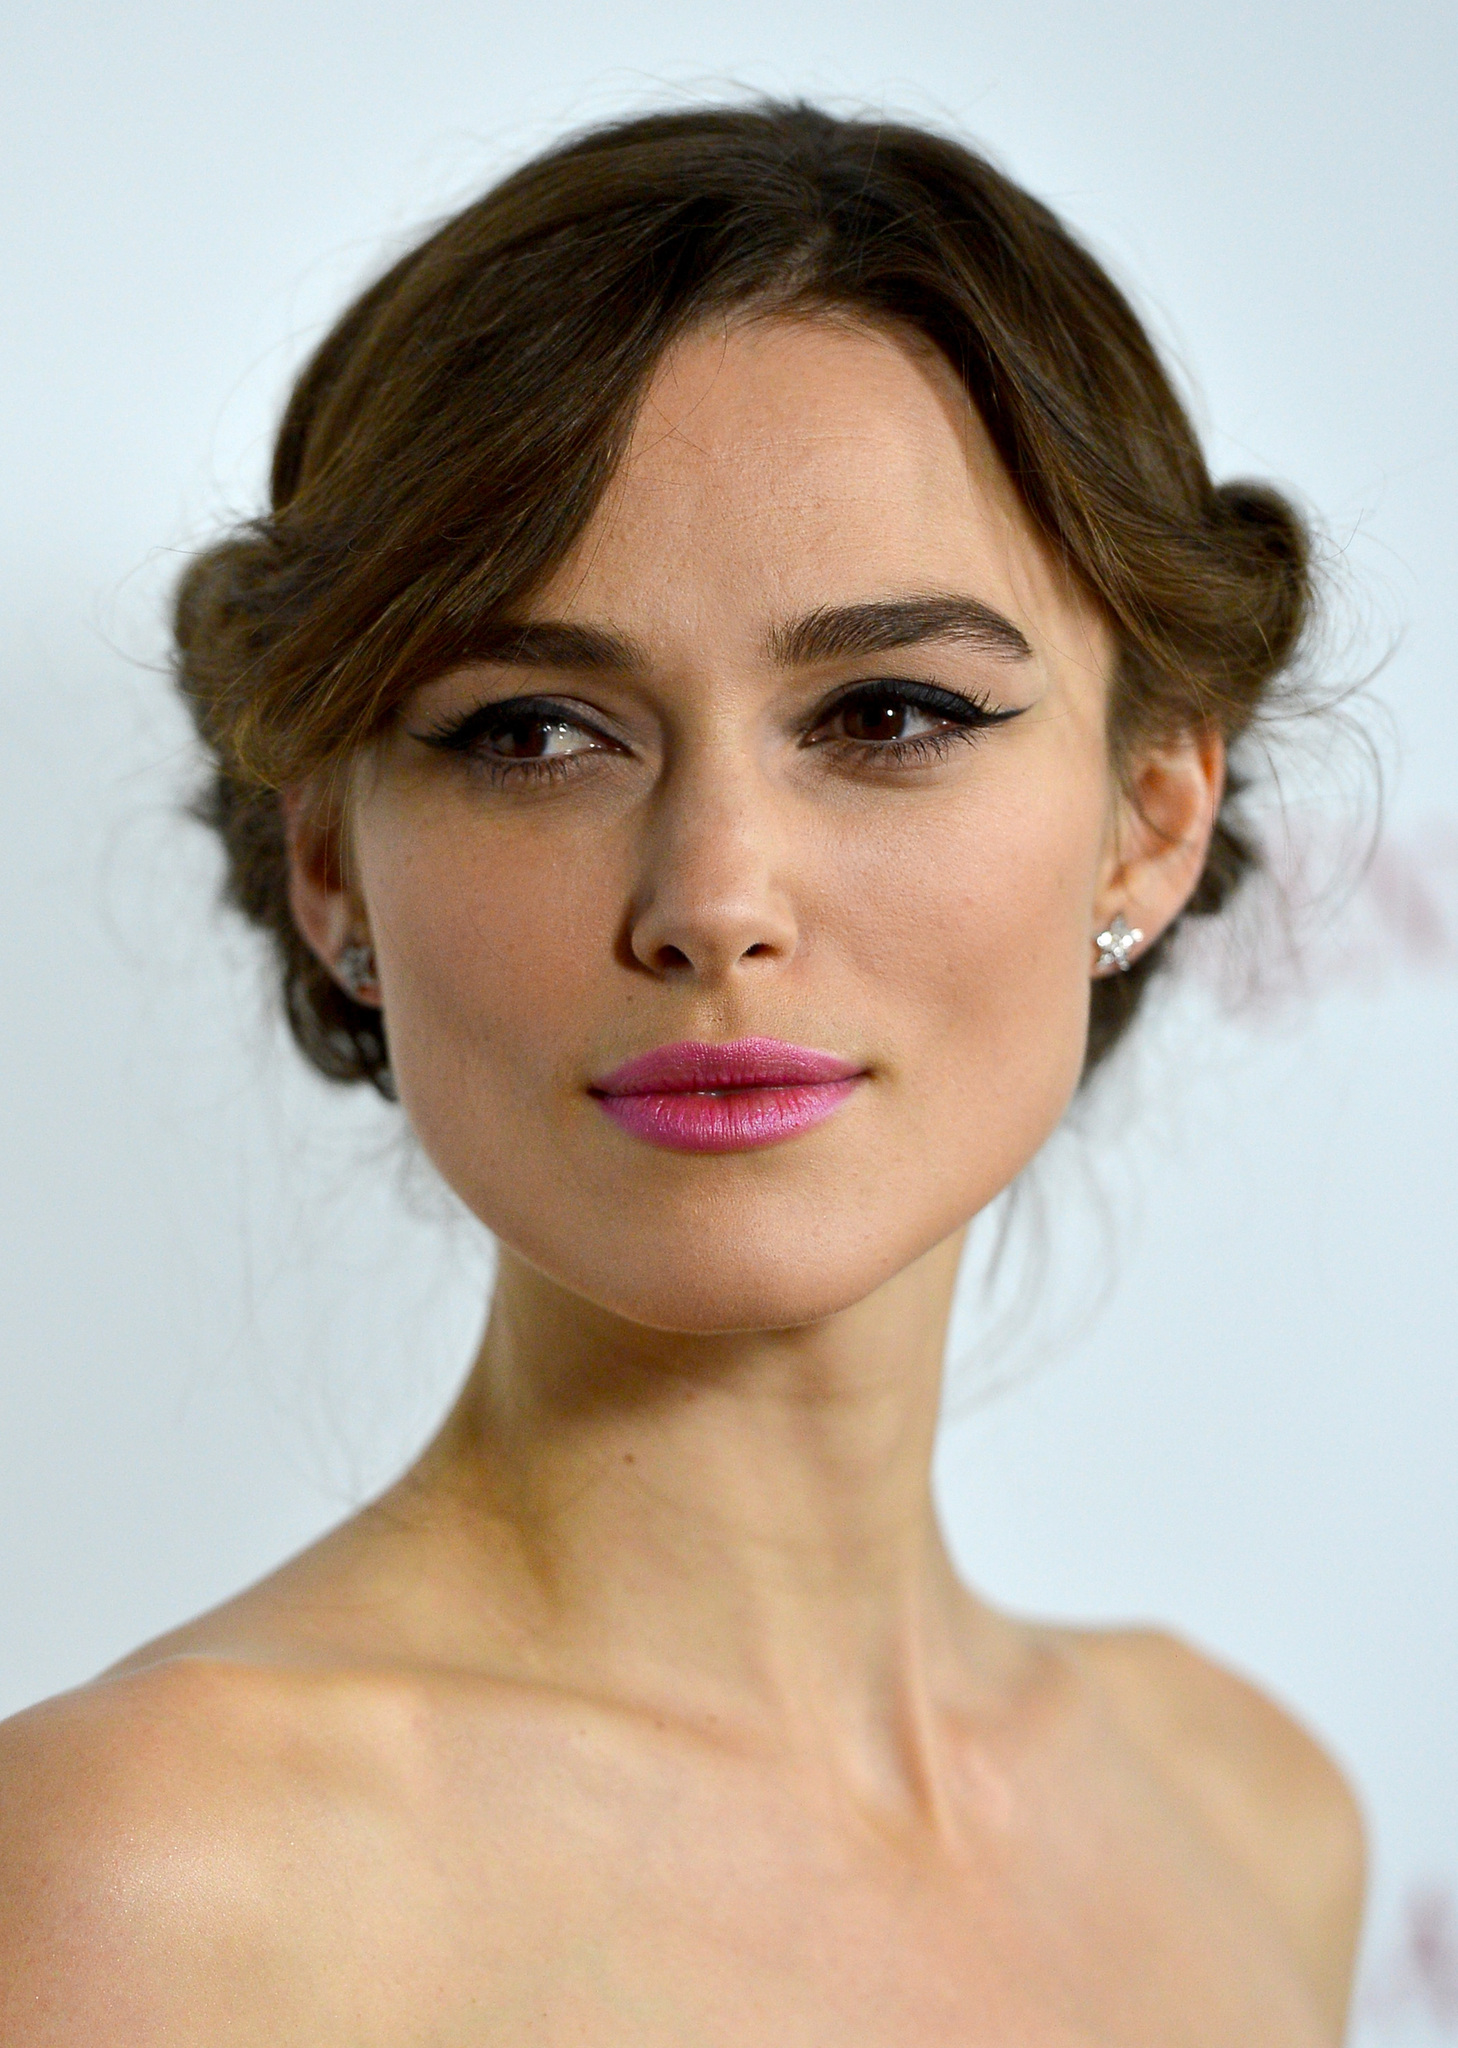 Fotos Keira Knightley nudes (19 photo), Sexy, Leaked, Selfie, in bikini 2019